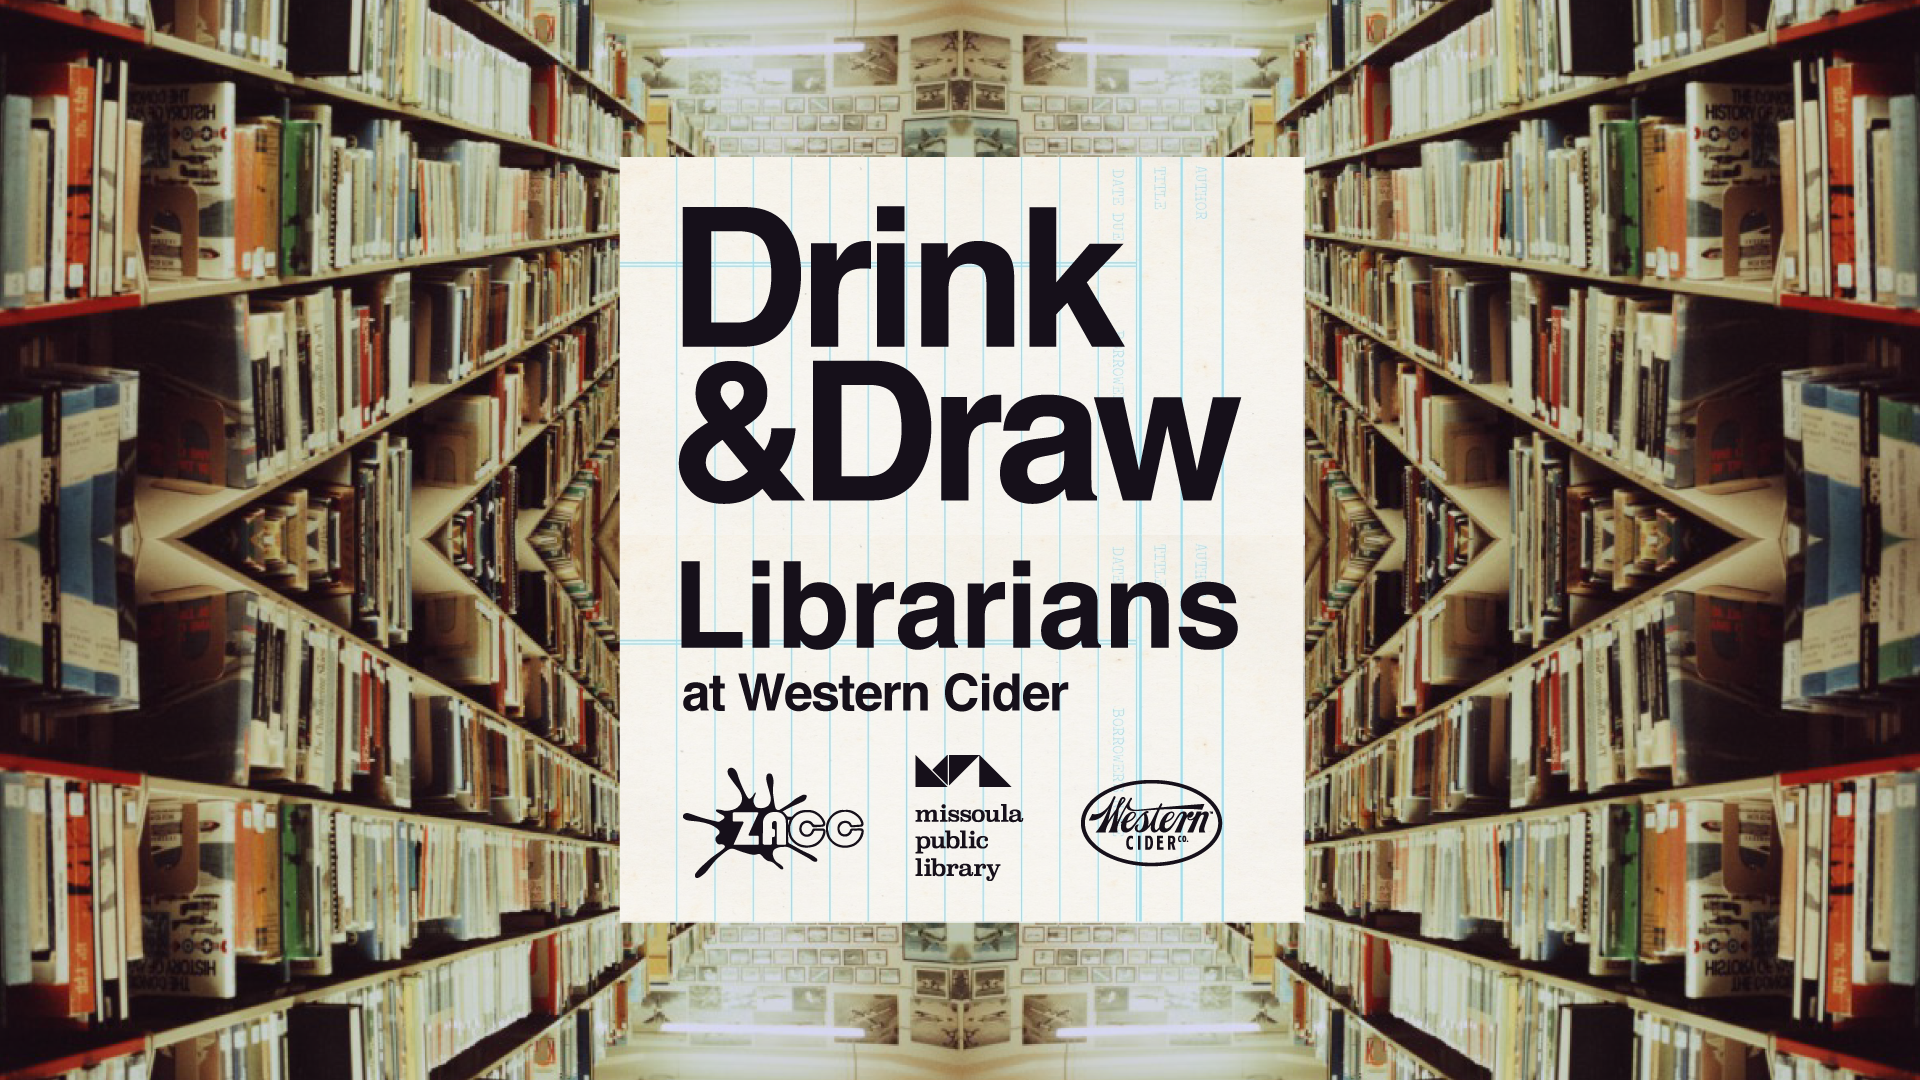 Drink & Draw Librarians with Missoula Public Library